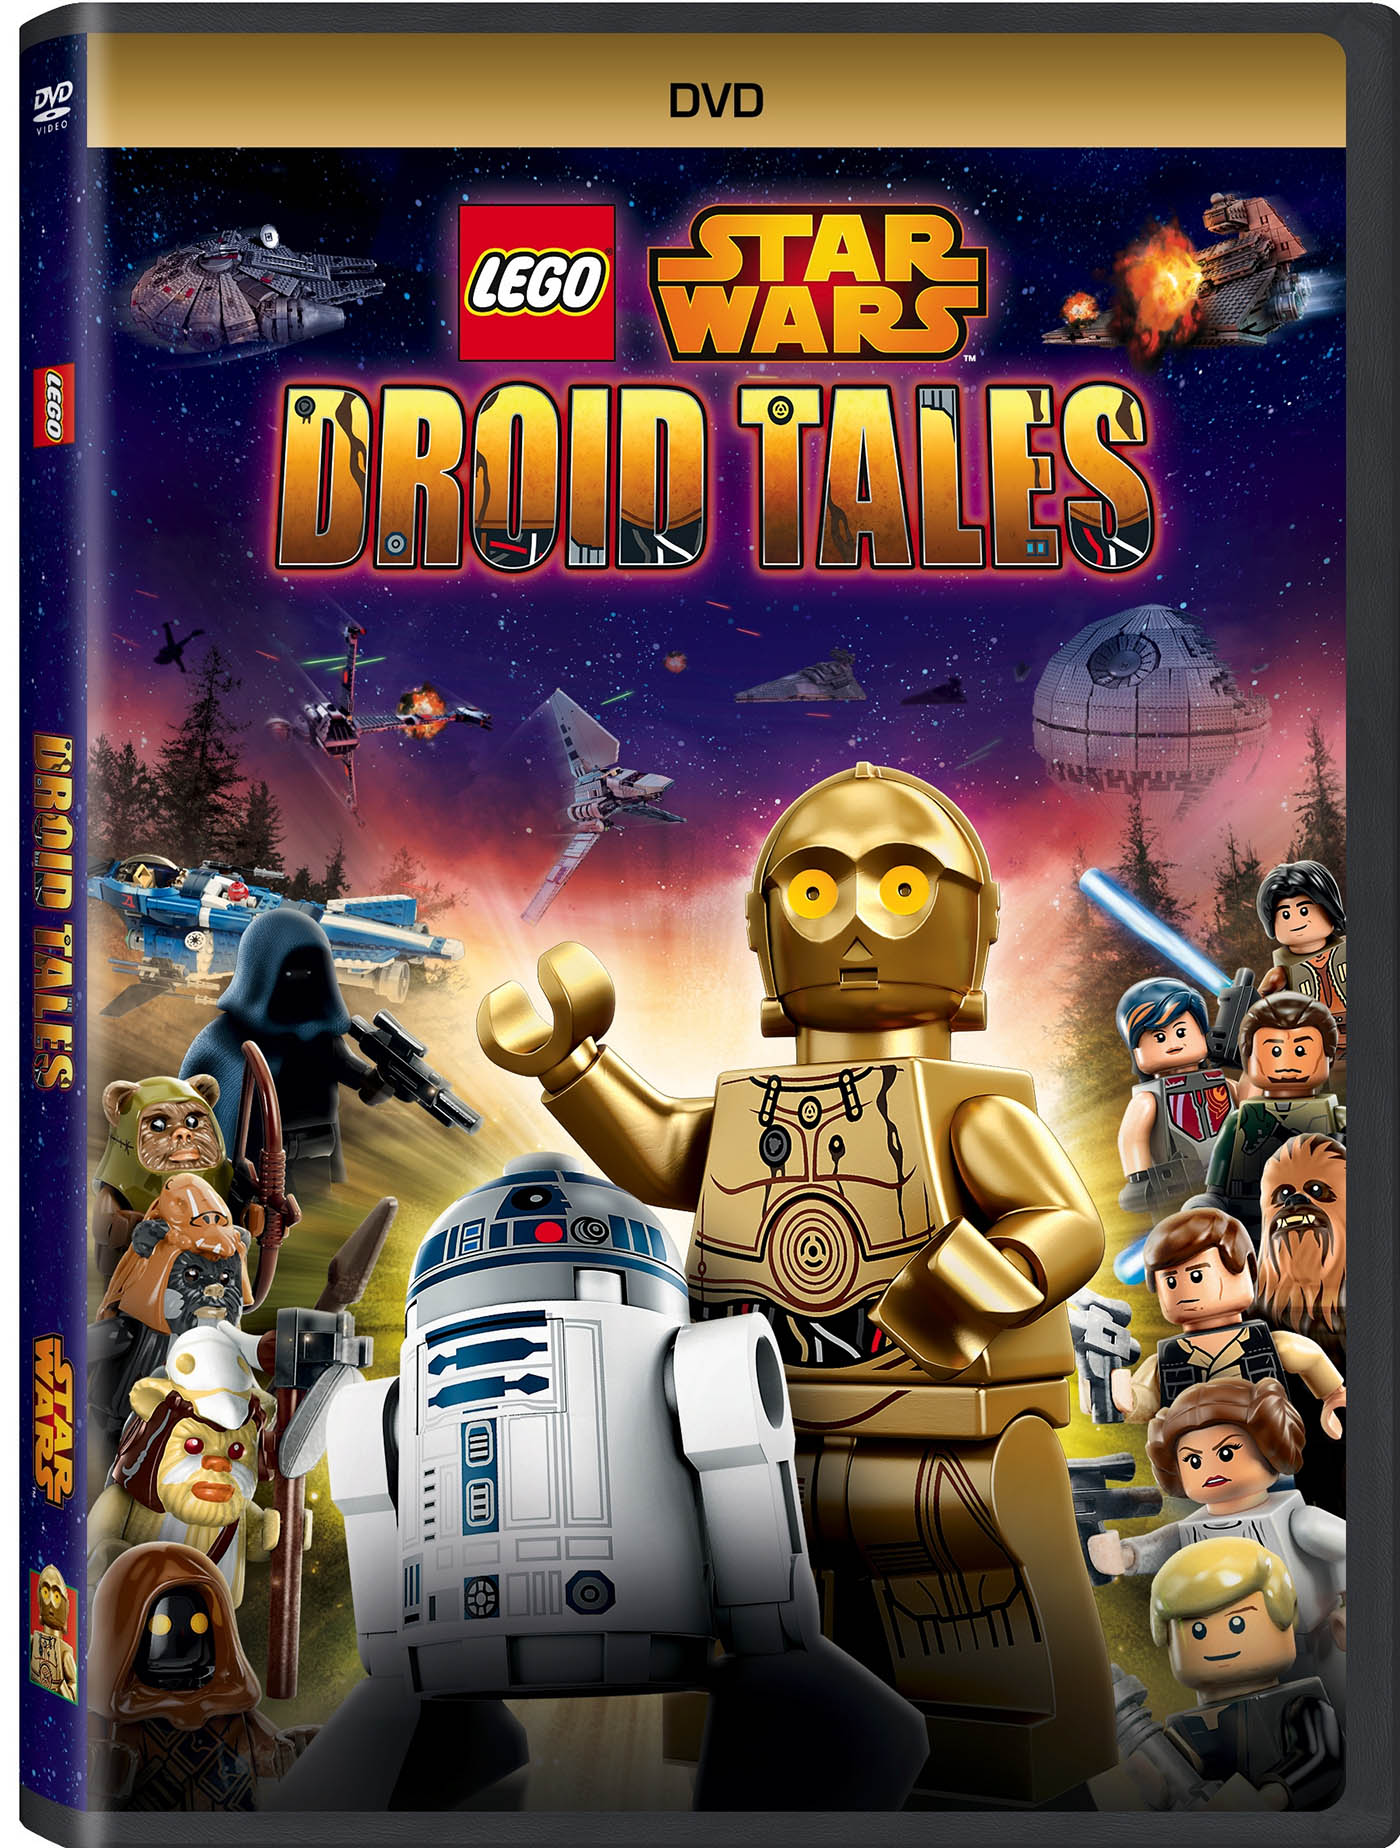 LEGO STAR WARS: Droid Tales DVD